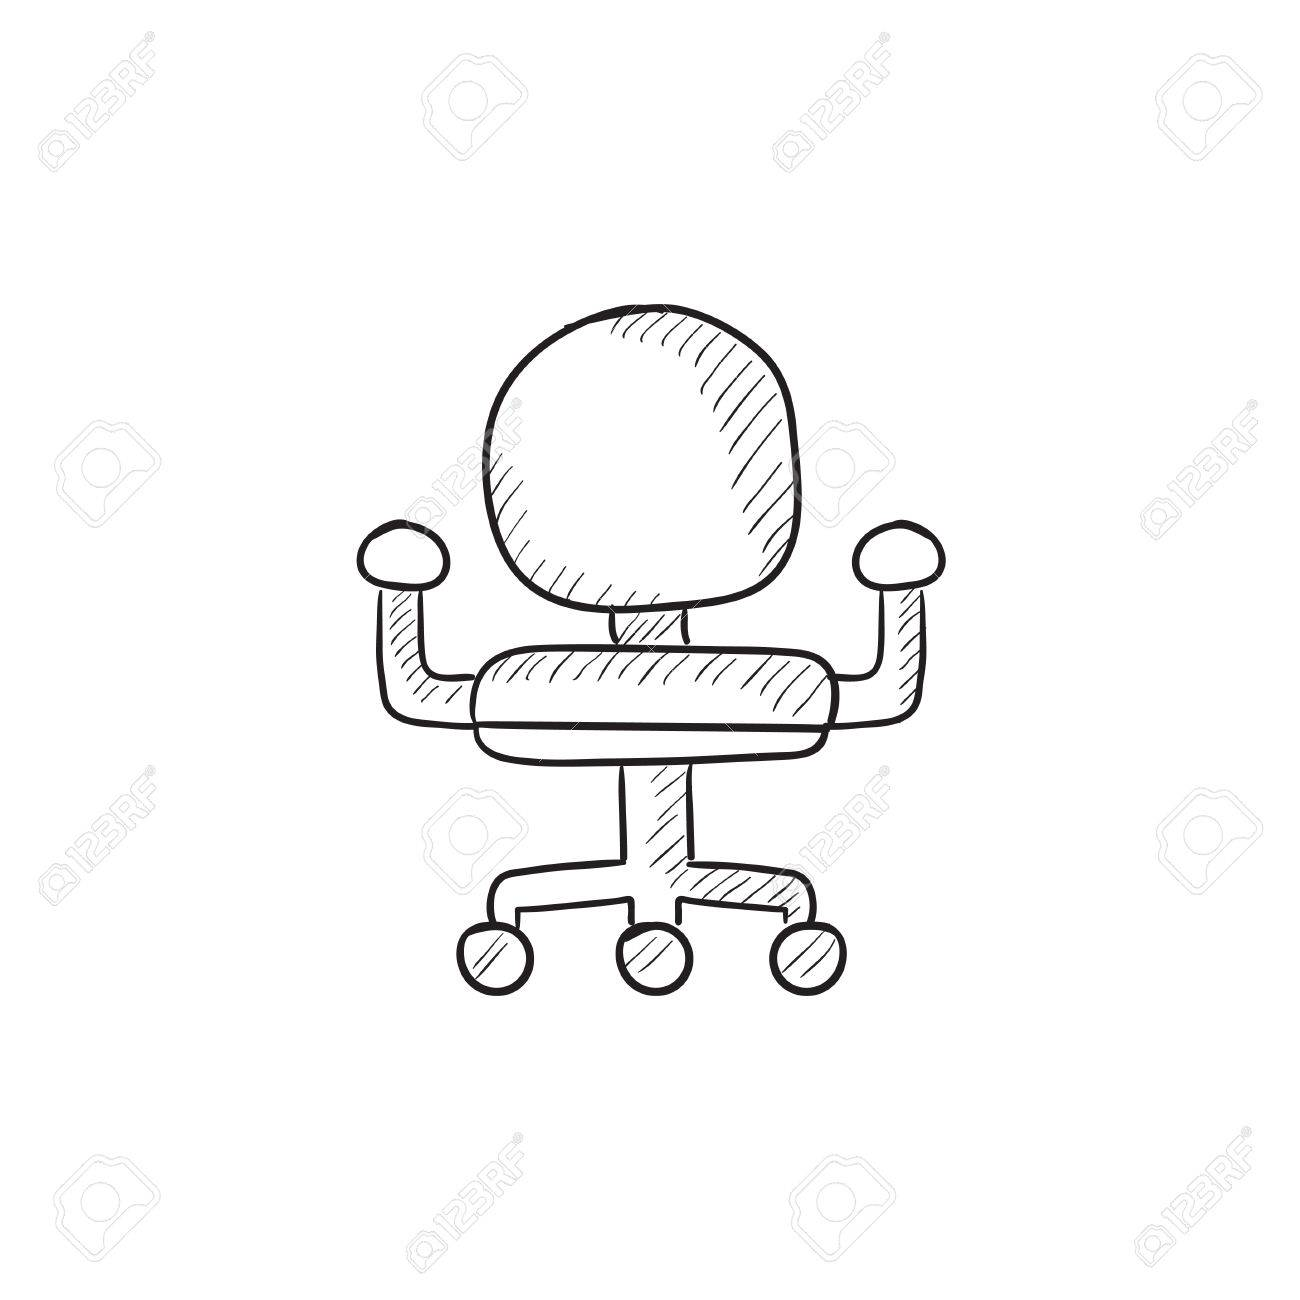 1300x1300 Office Chair Vector Sketch Icon Isolated On Background. Hand